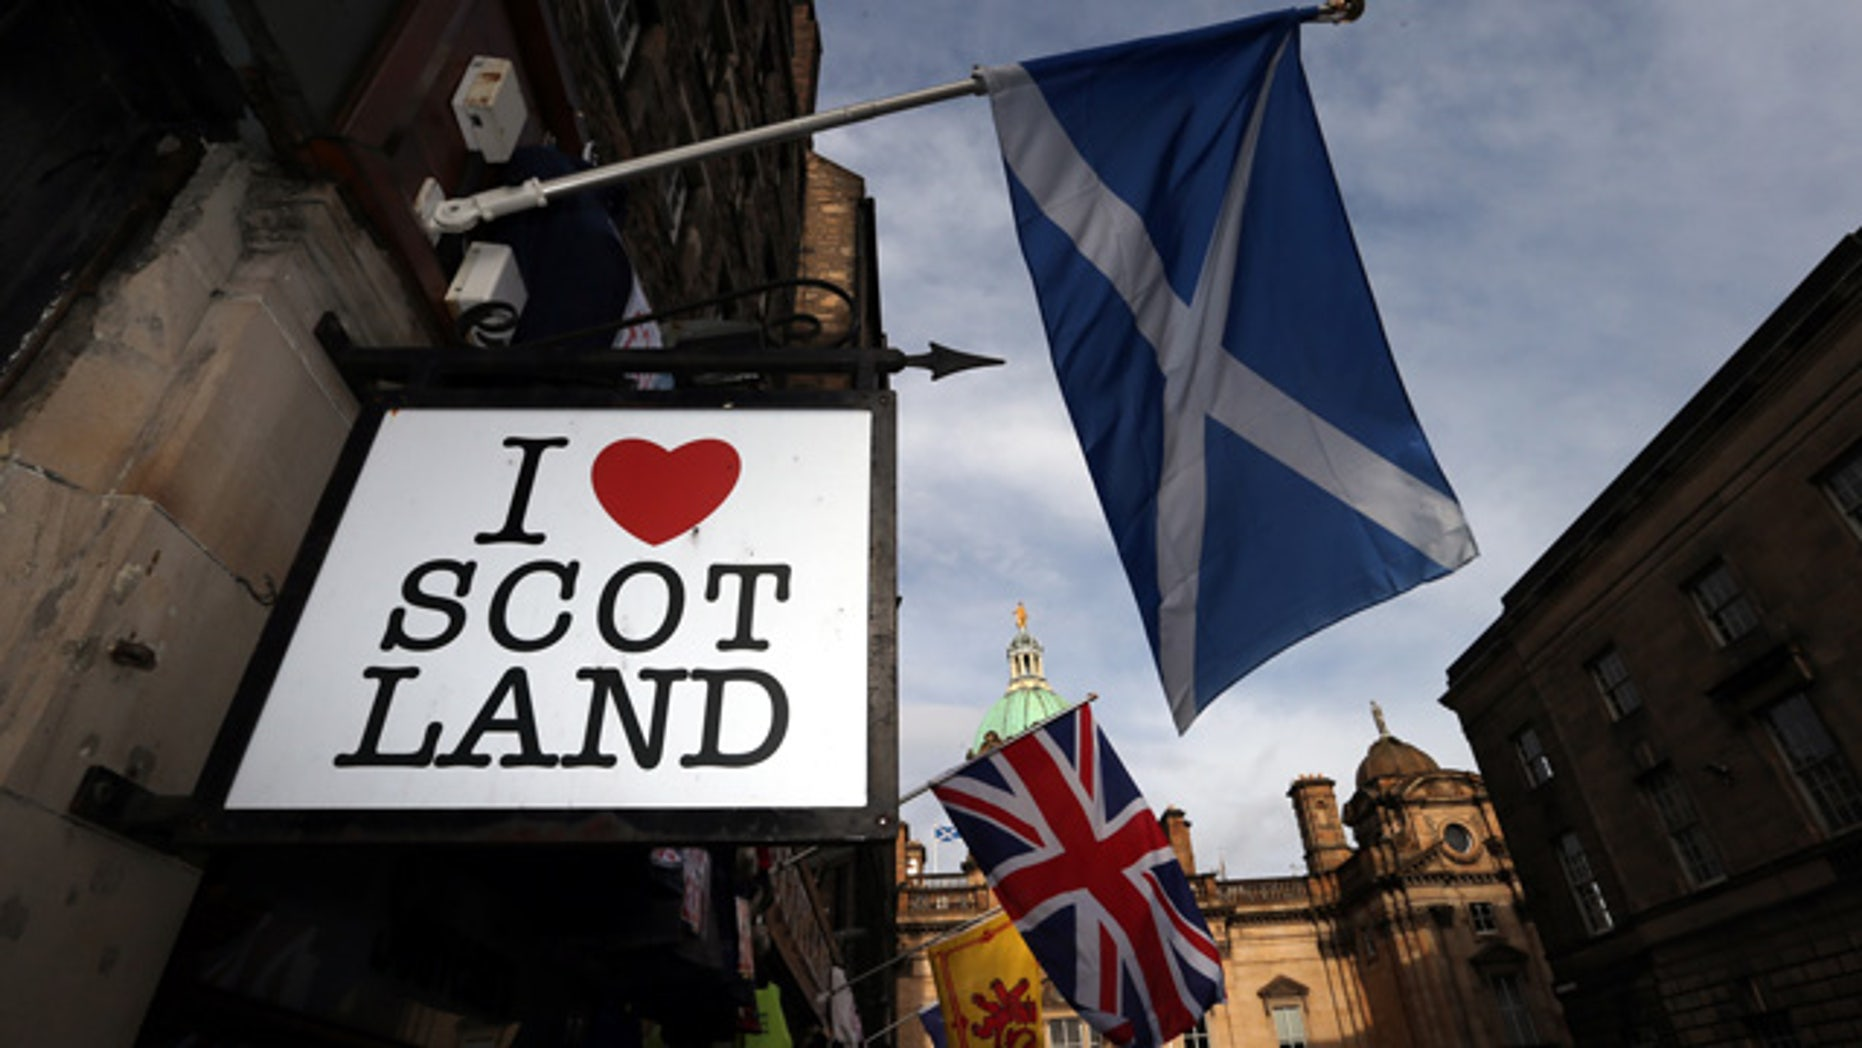 FILE - In this Thursday, Feb. 13, 2014, file photo a Scottish flag and a Union flag fly outside a Scottish memorabilia shop in Edinburgh, Scotland. (AP Photo/Scott Heppell, File)